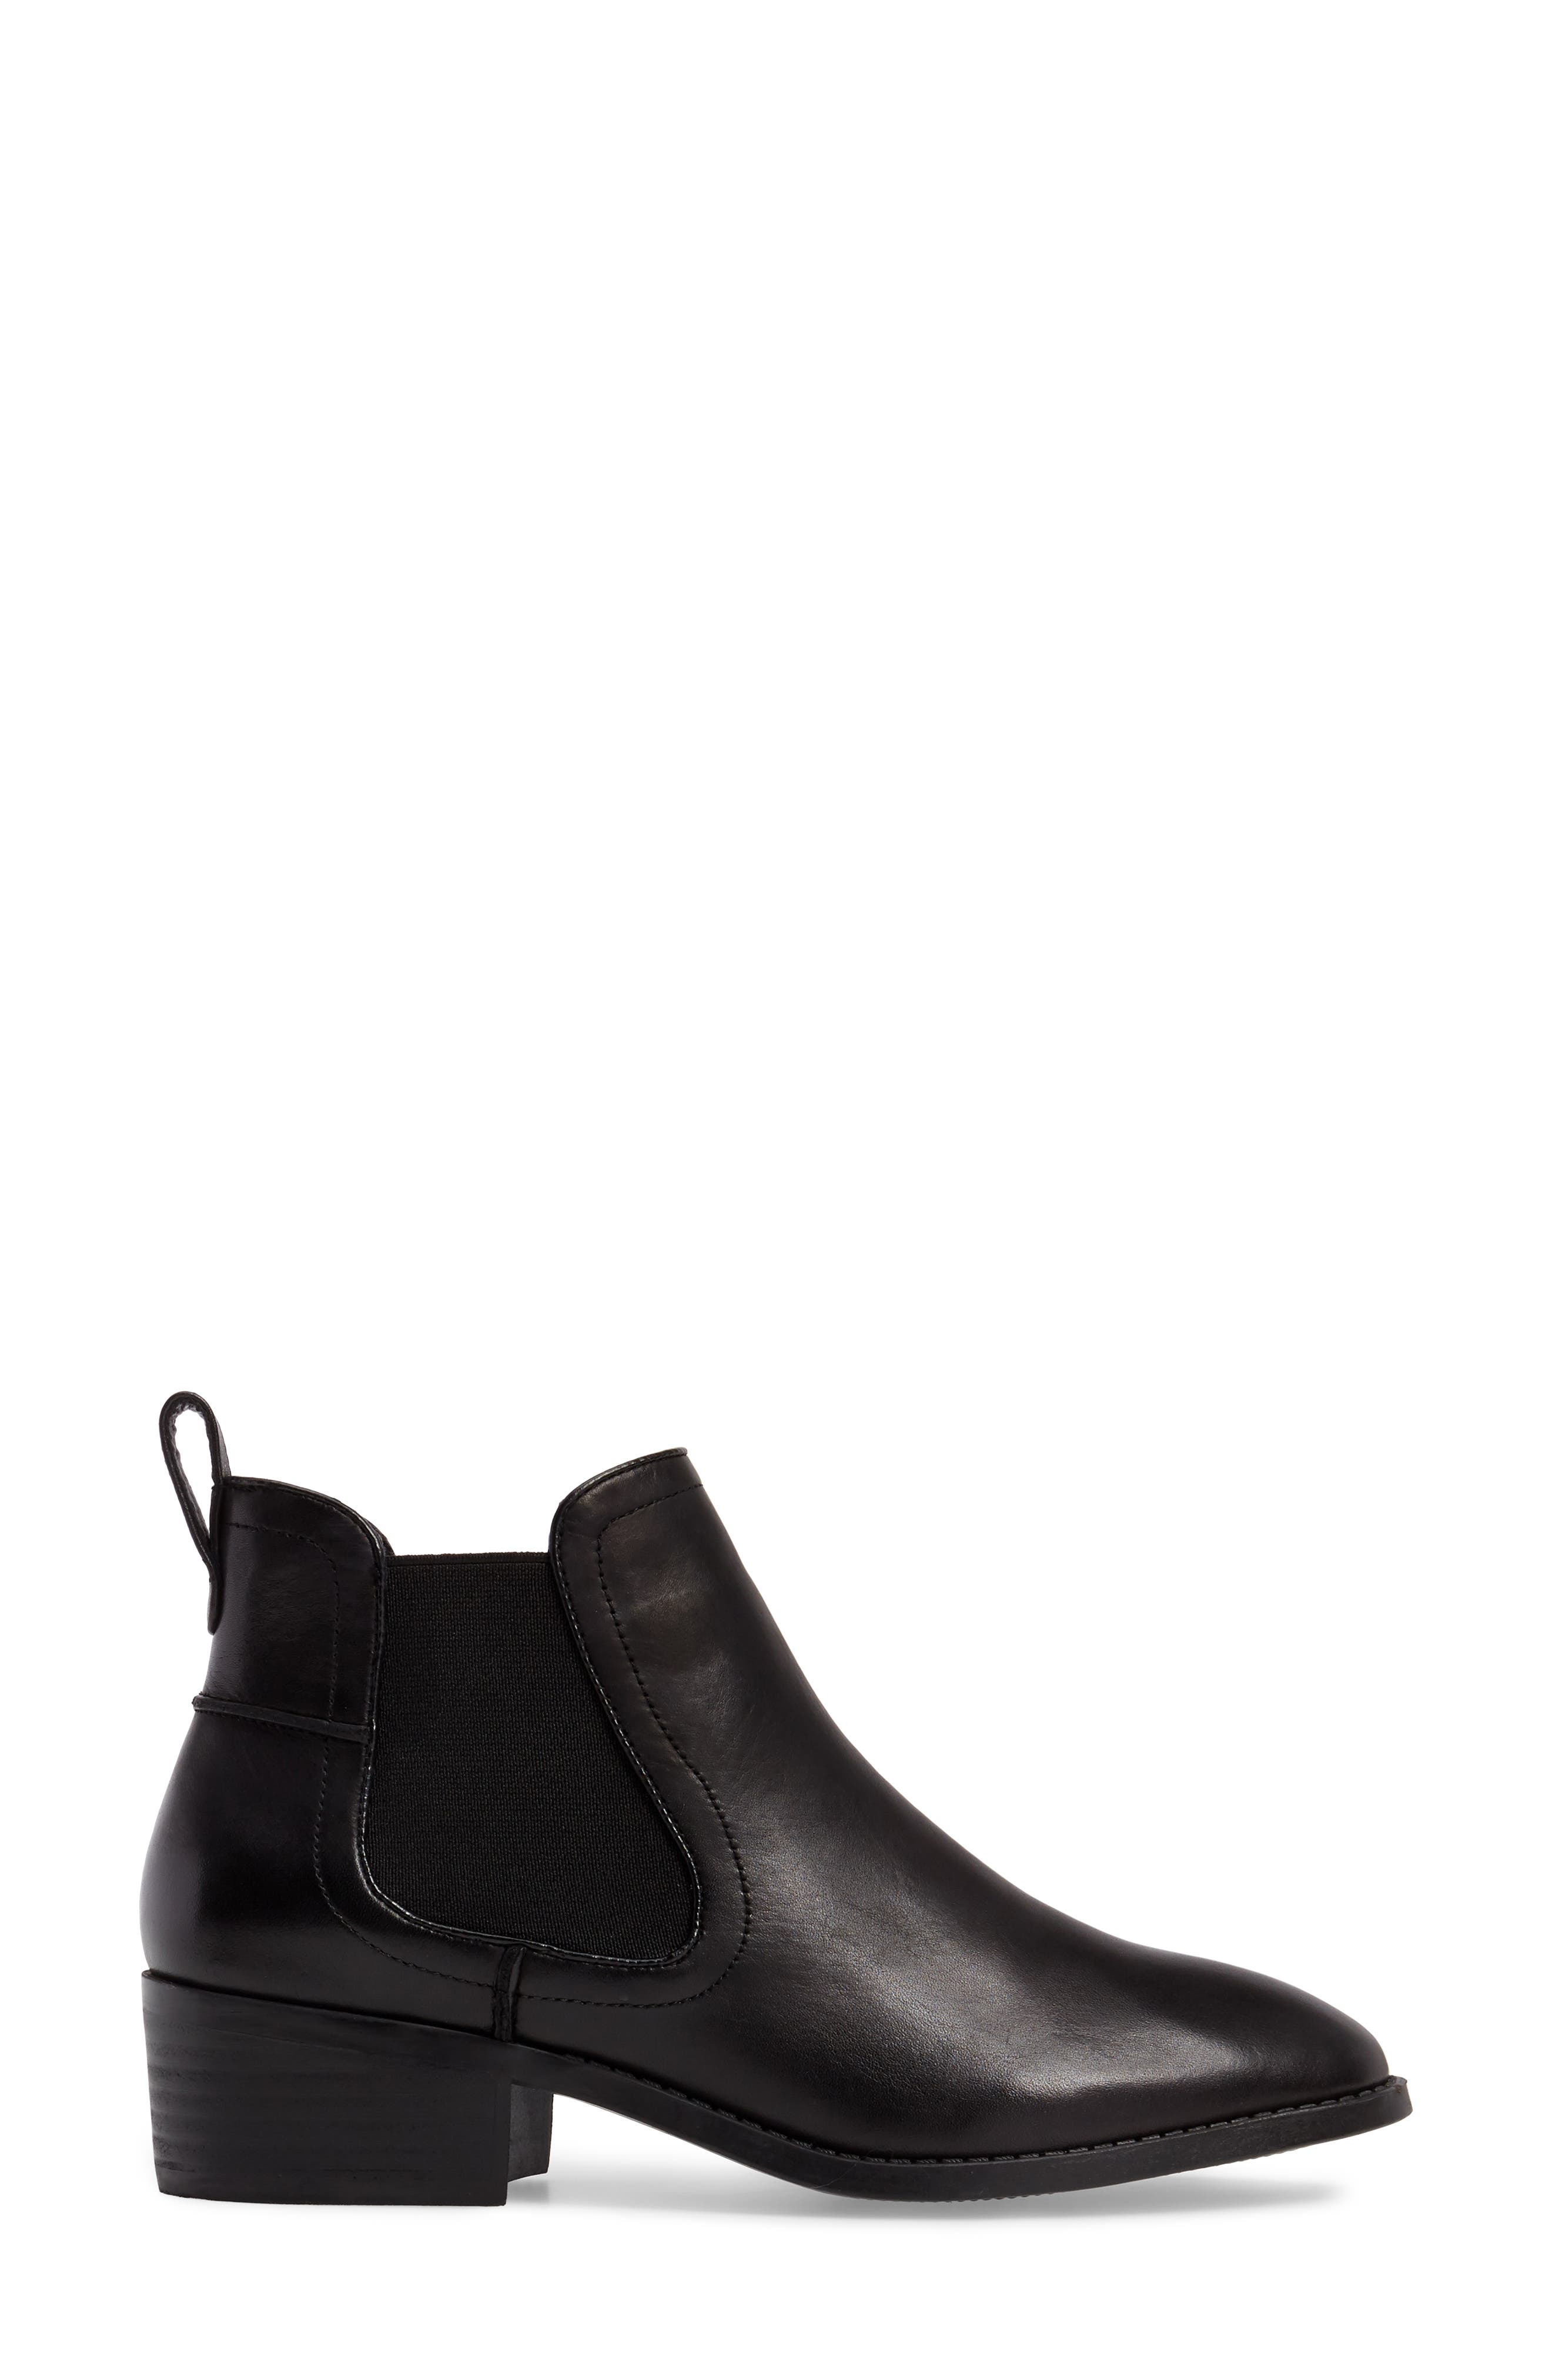 Dicey Chelsea Boot,                             Alternate thumbnail 3, color,                             001